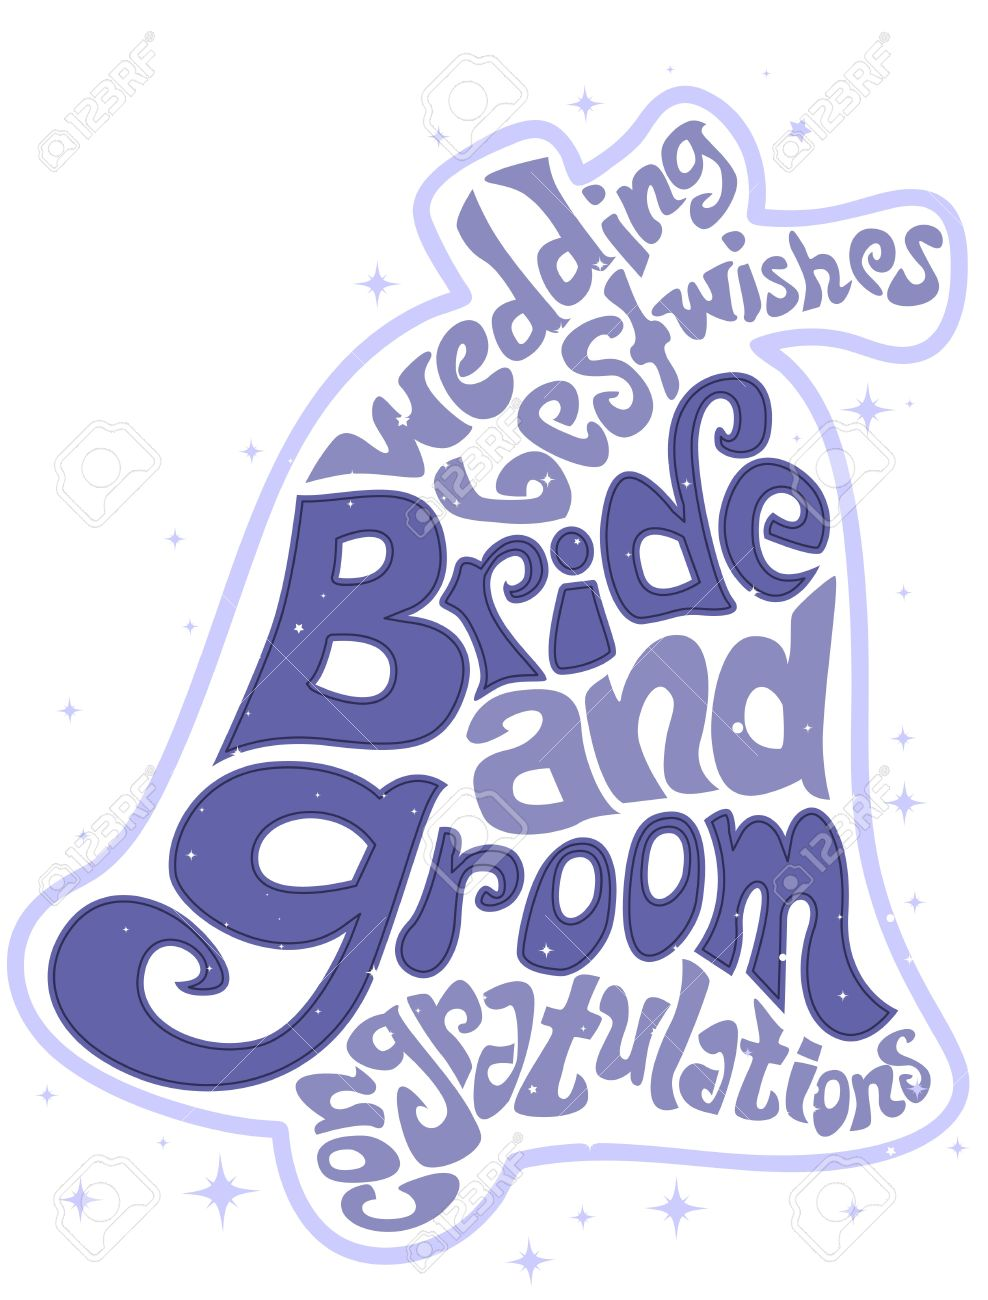 illustration featuring wedding related words forming the shape